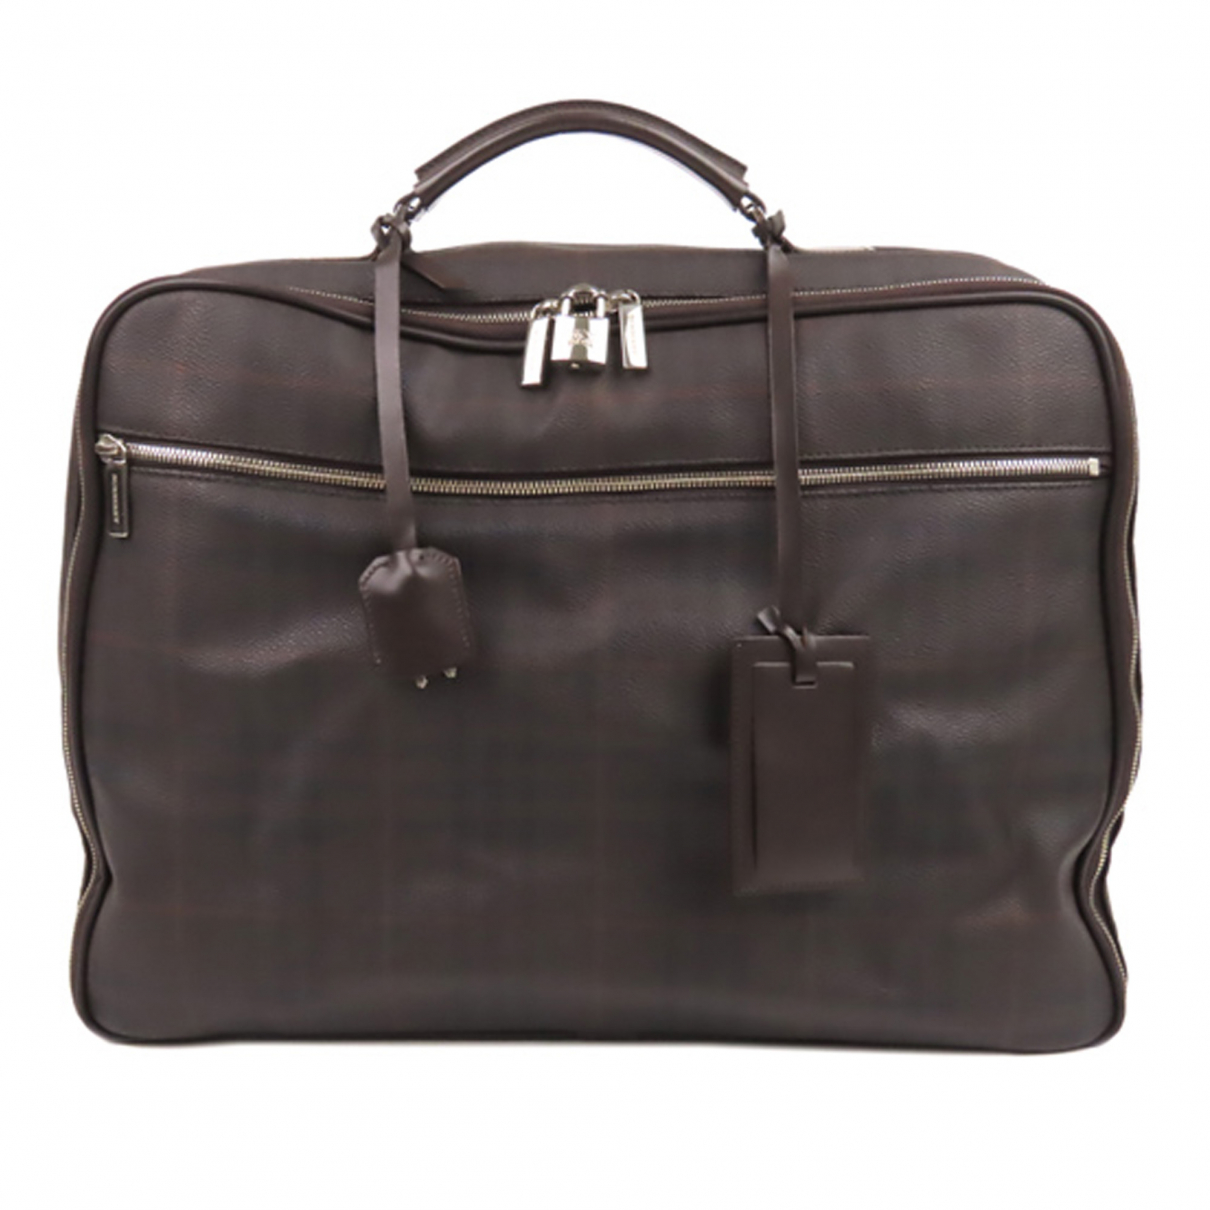 Burberry N Brown Cloth Travel bag for Women N